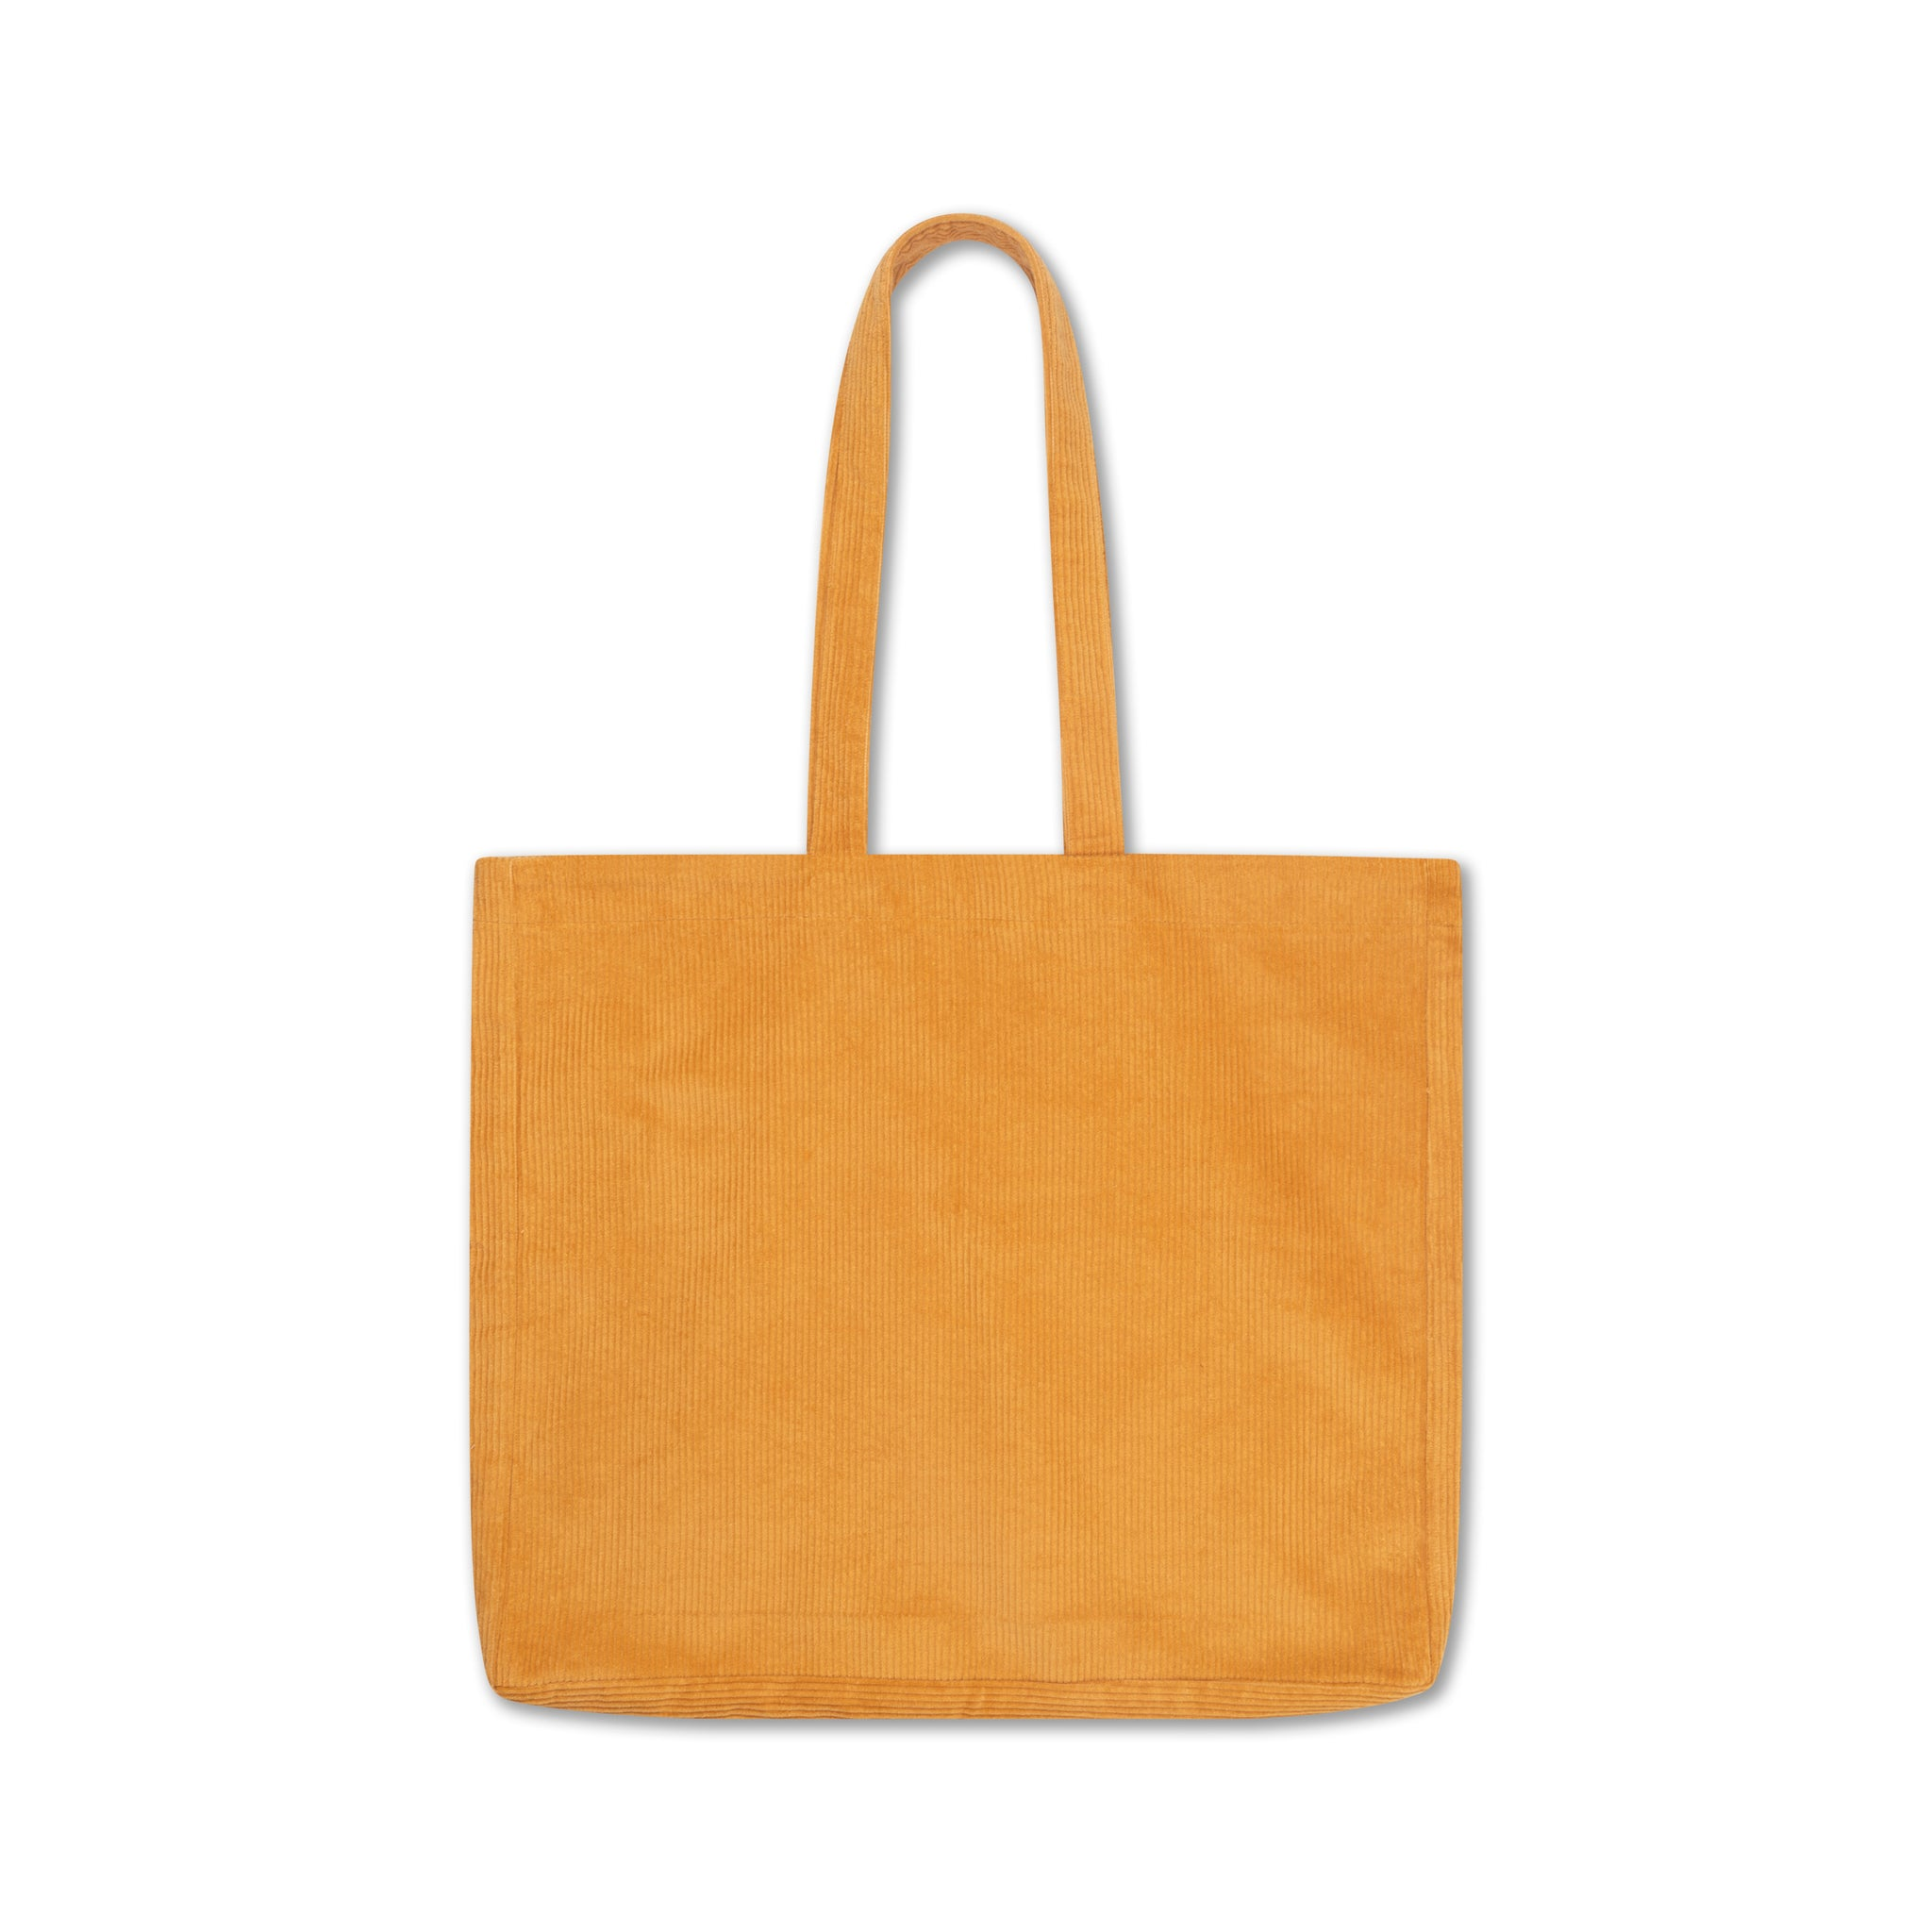 Repose AMS Bag Soft Golden Yellow Corduroy